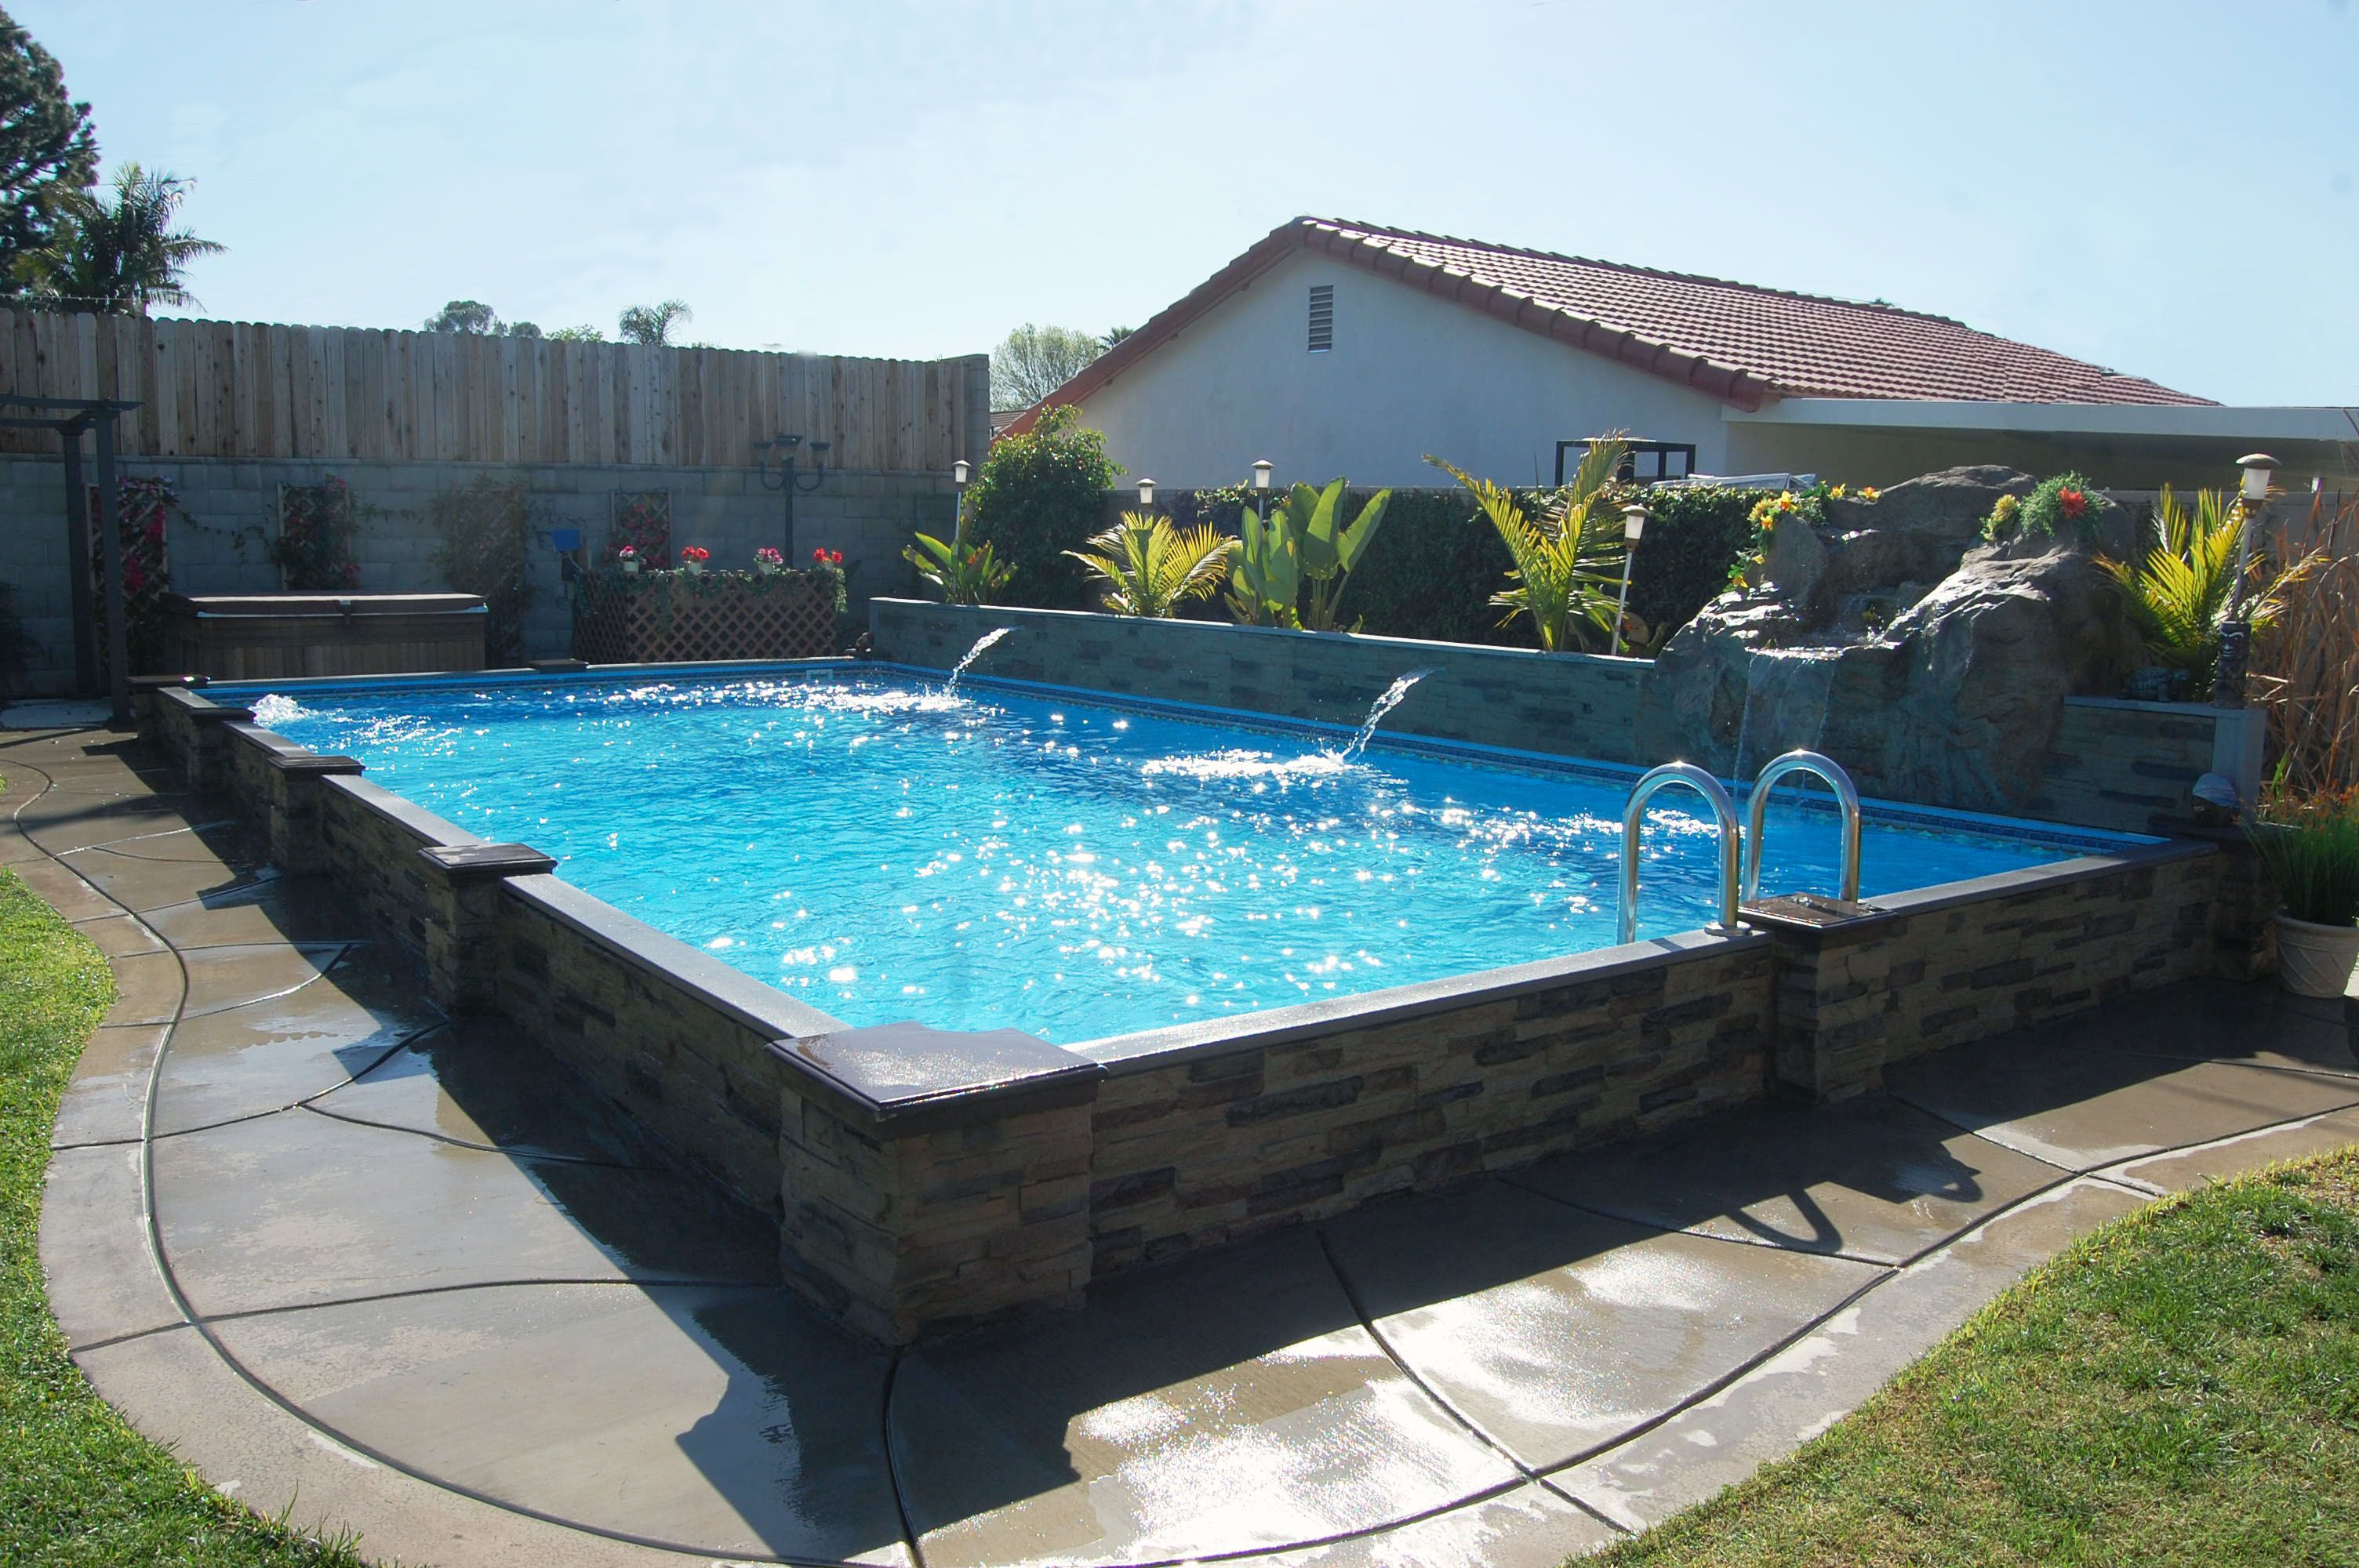 This exlusive Islander pool is 14' x 28' with a rock waterfall and 2